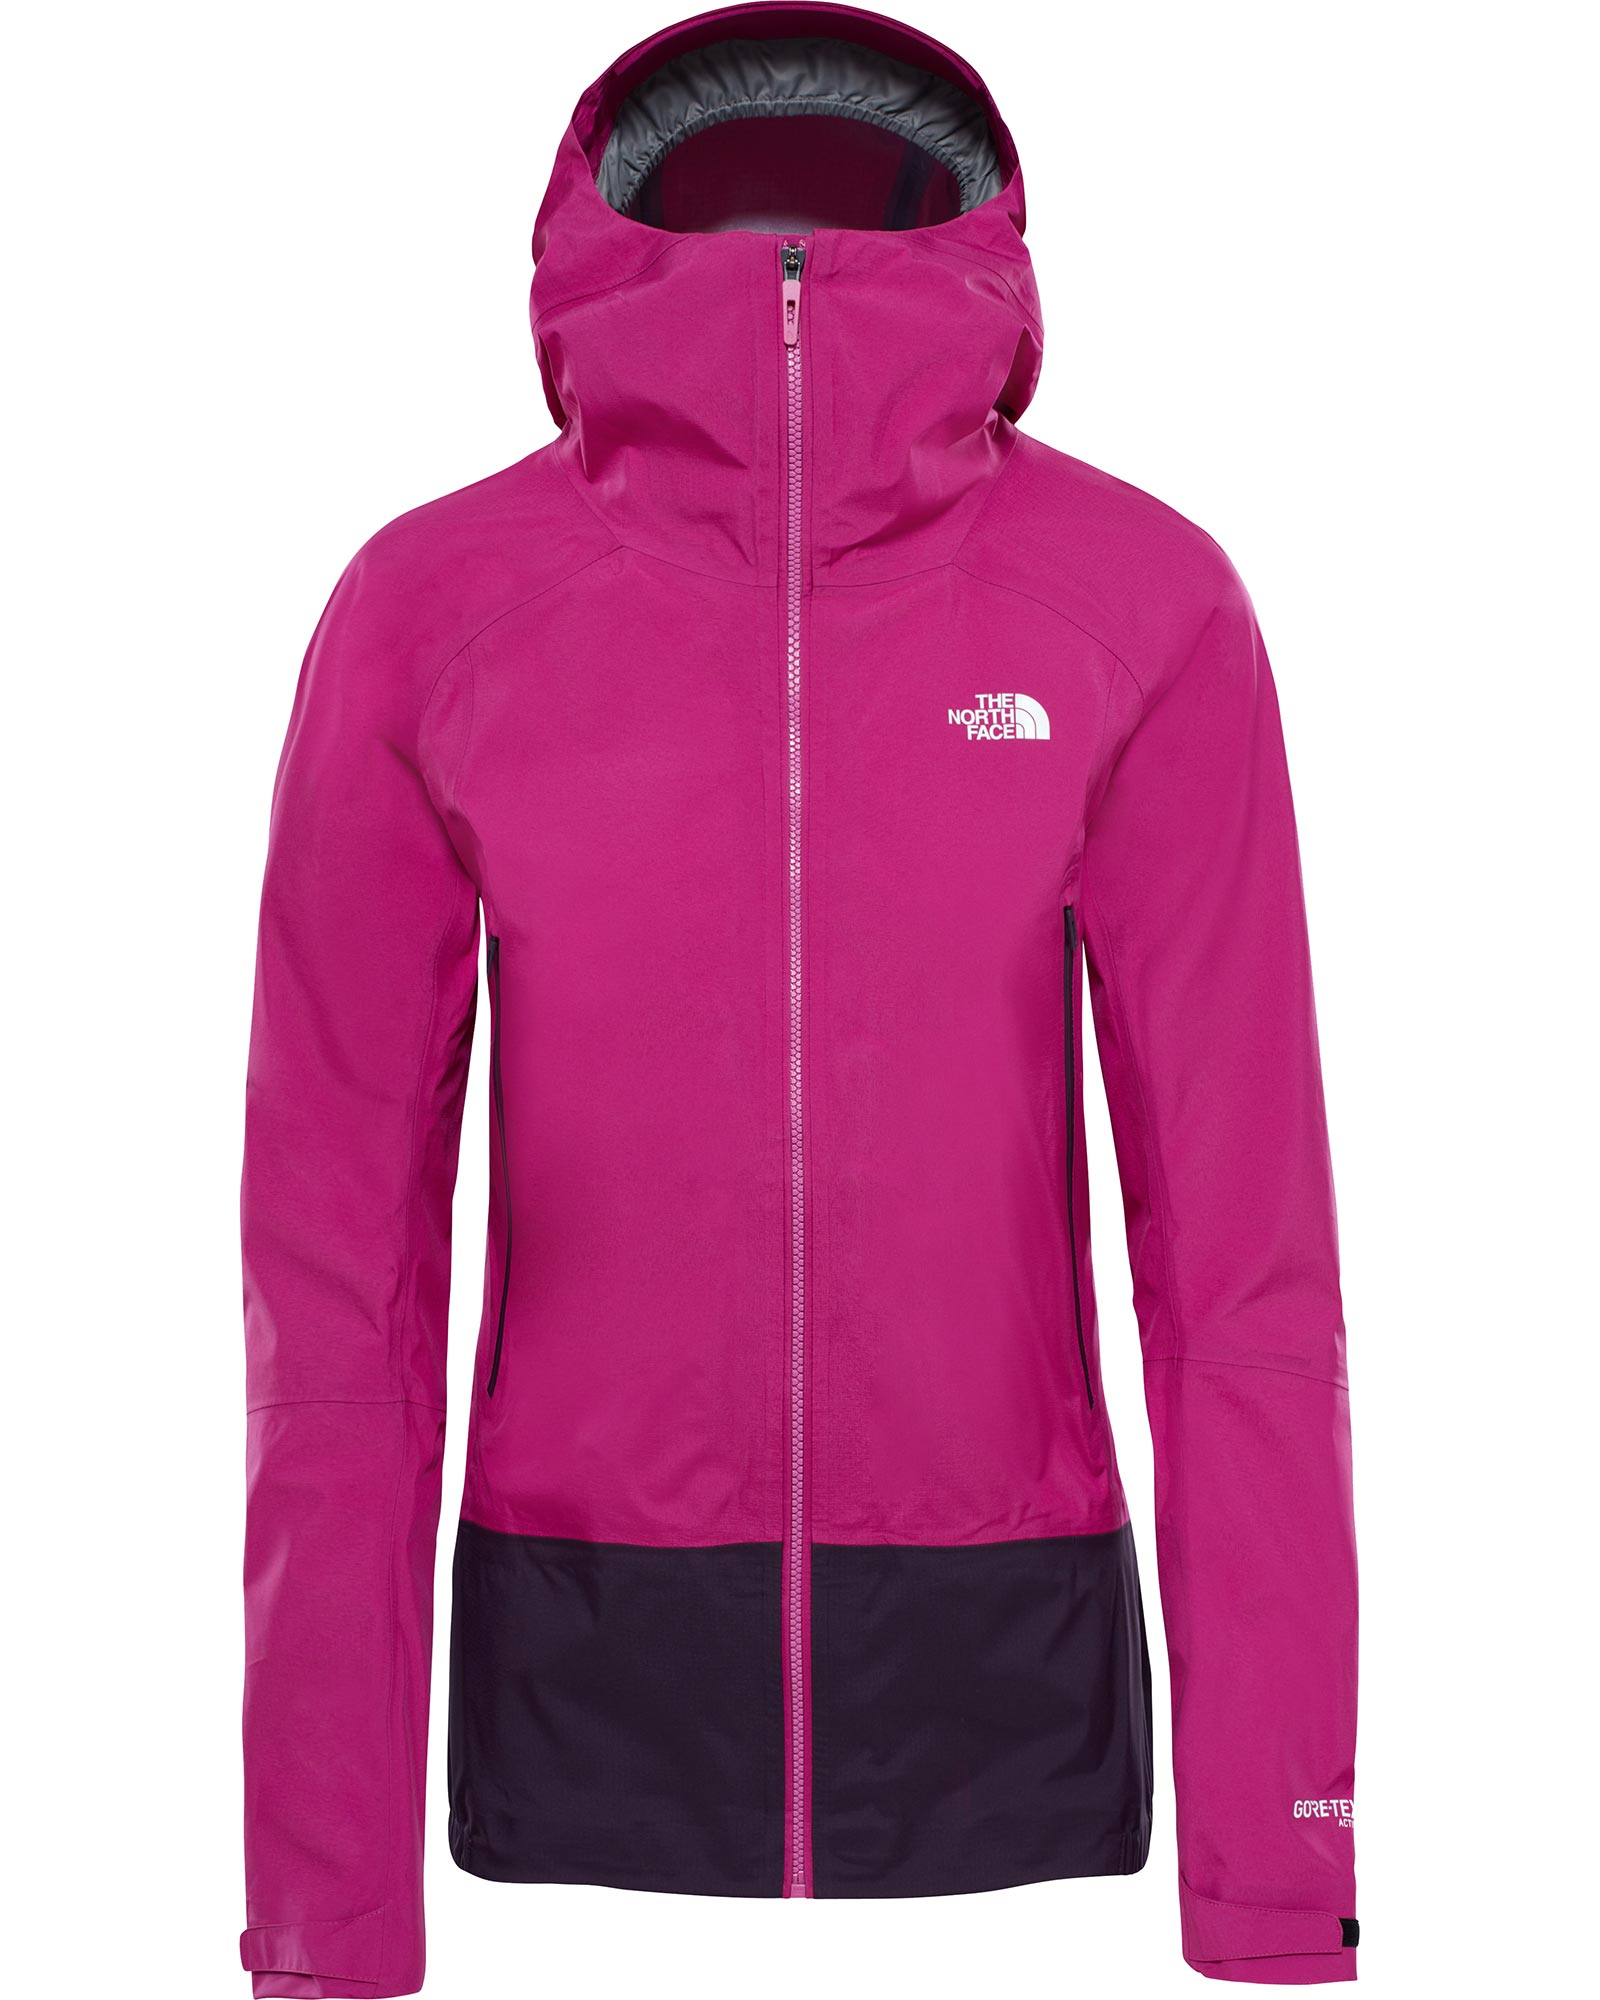 The North Face Shinpuru 2 GORE-TEX Active Women's Waterproof Jacket 0